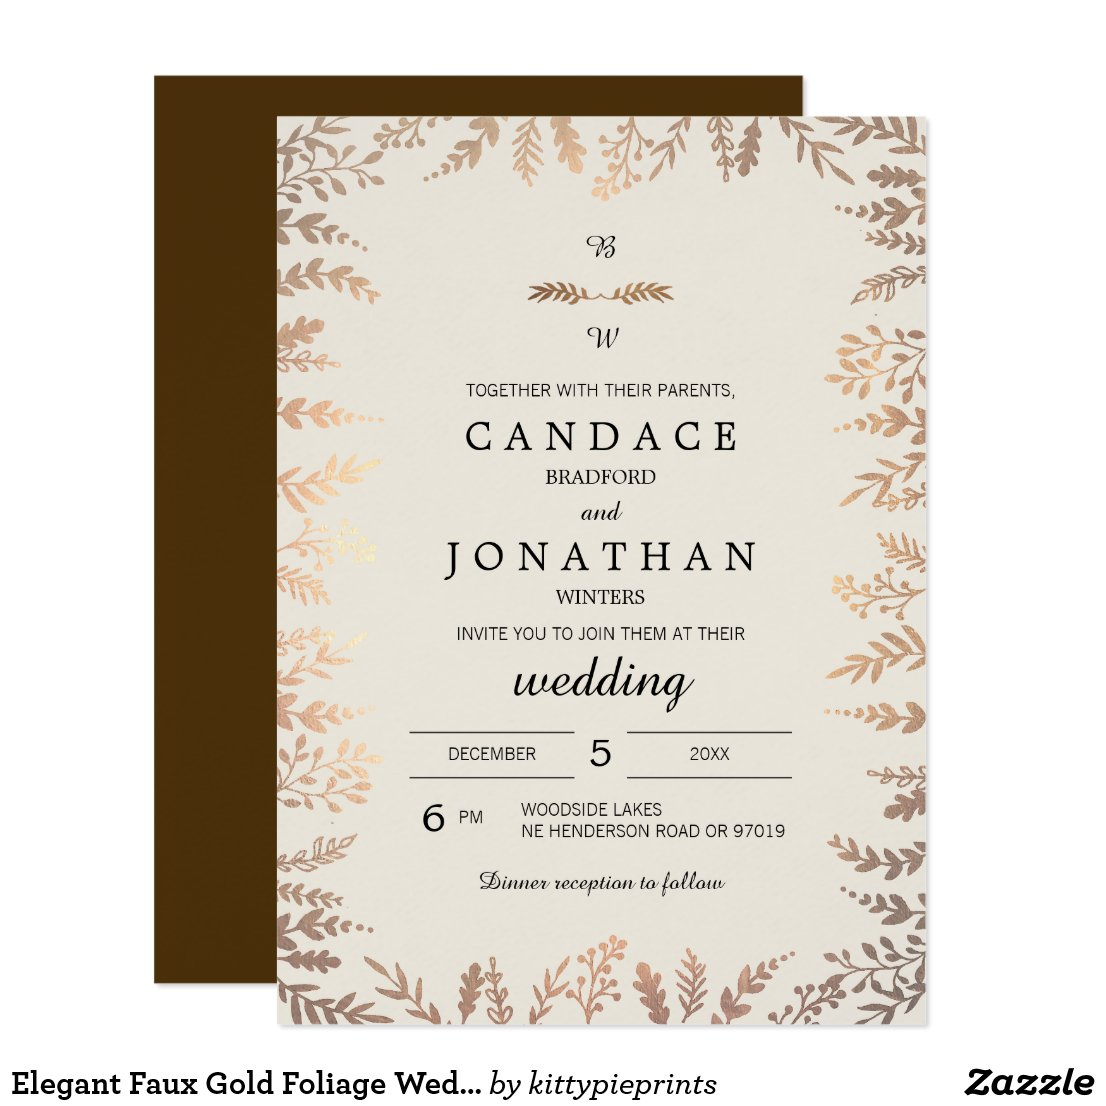 Elegant Faux Gold Foliage Wedding Card